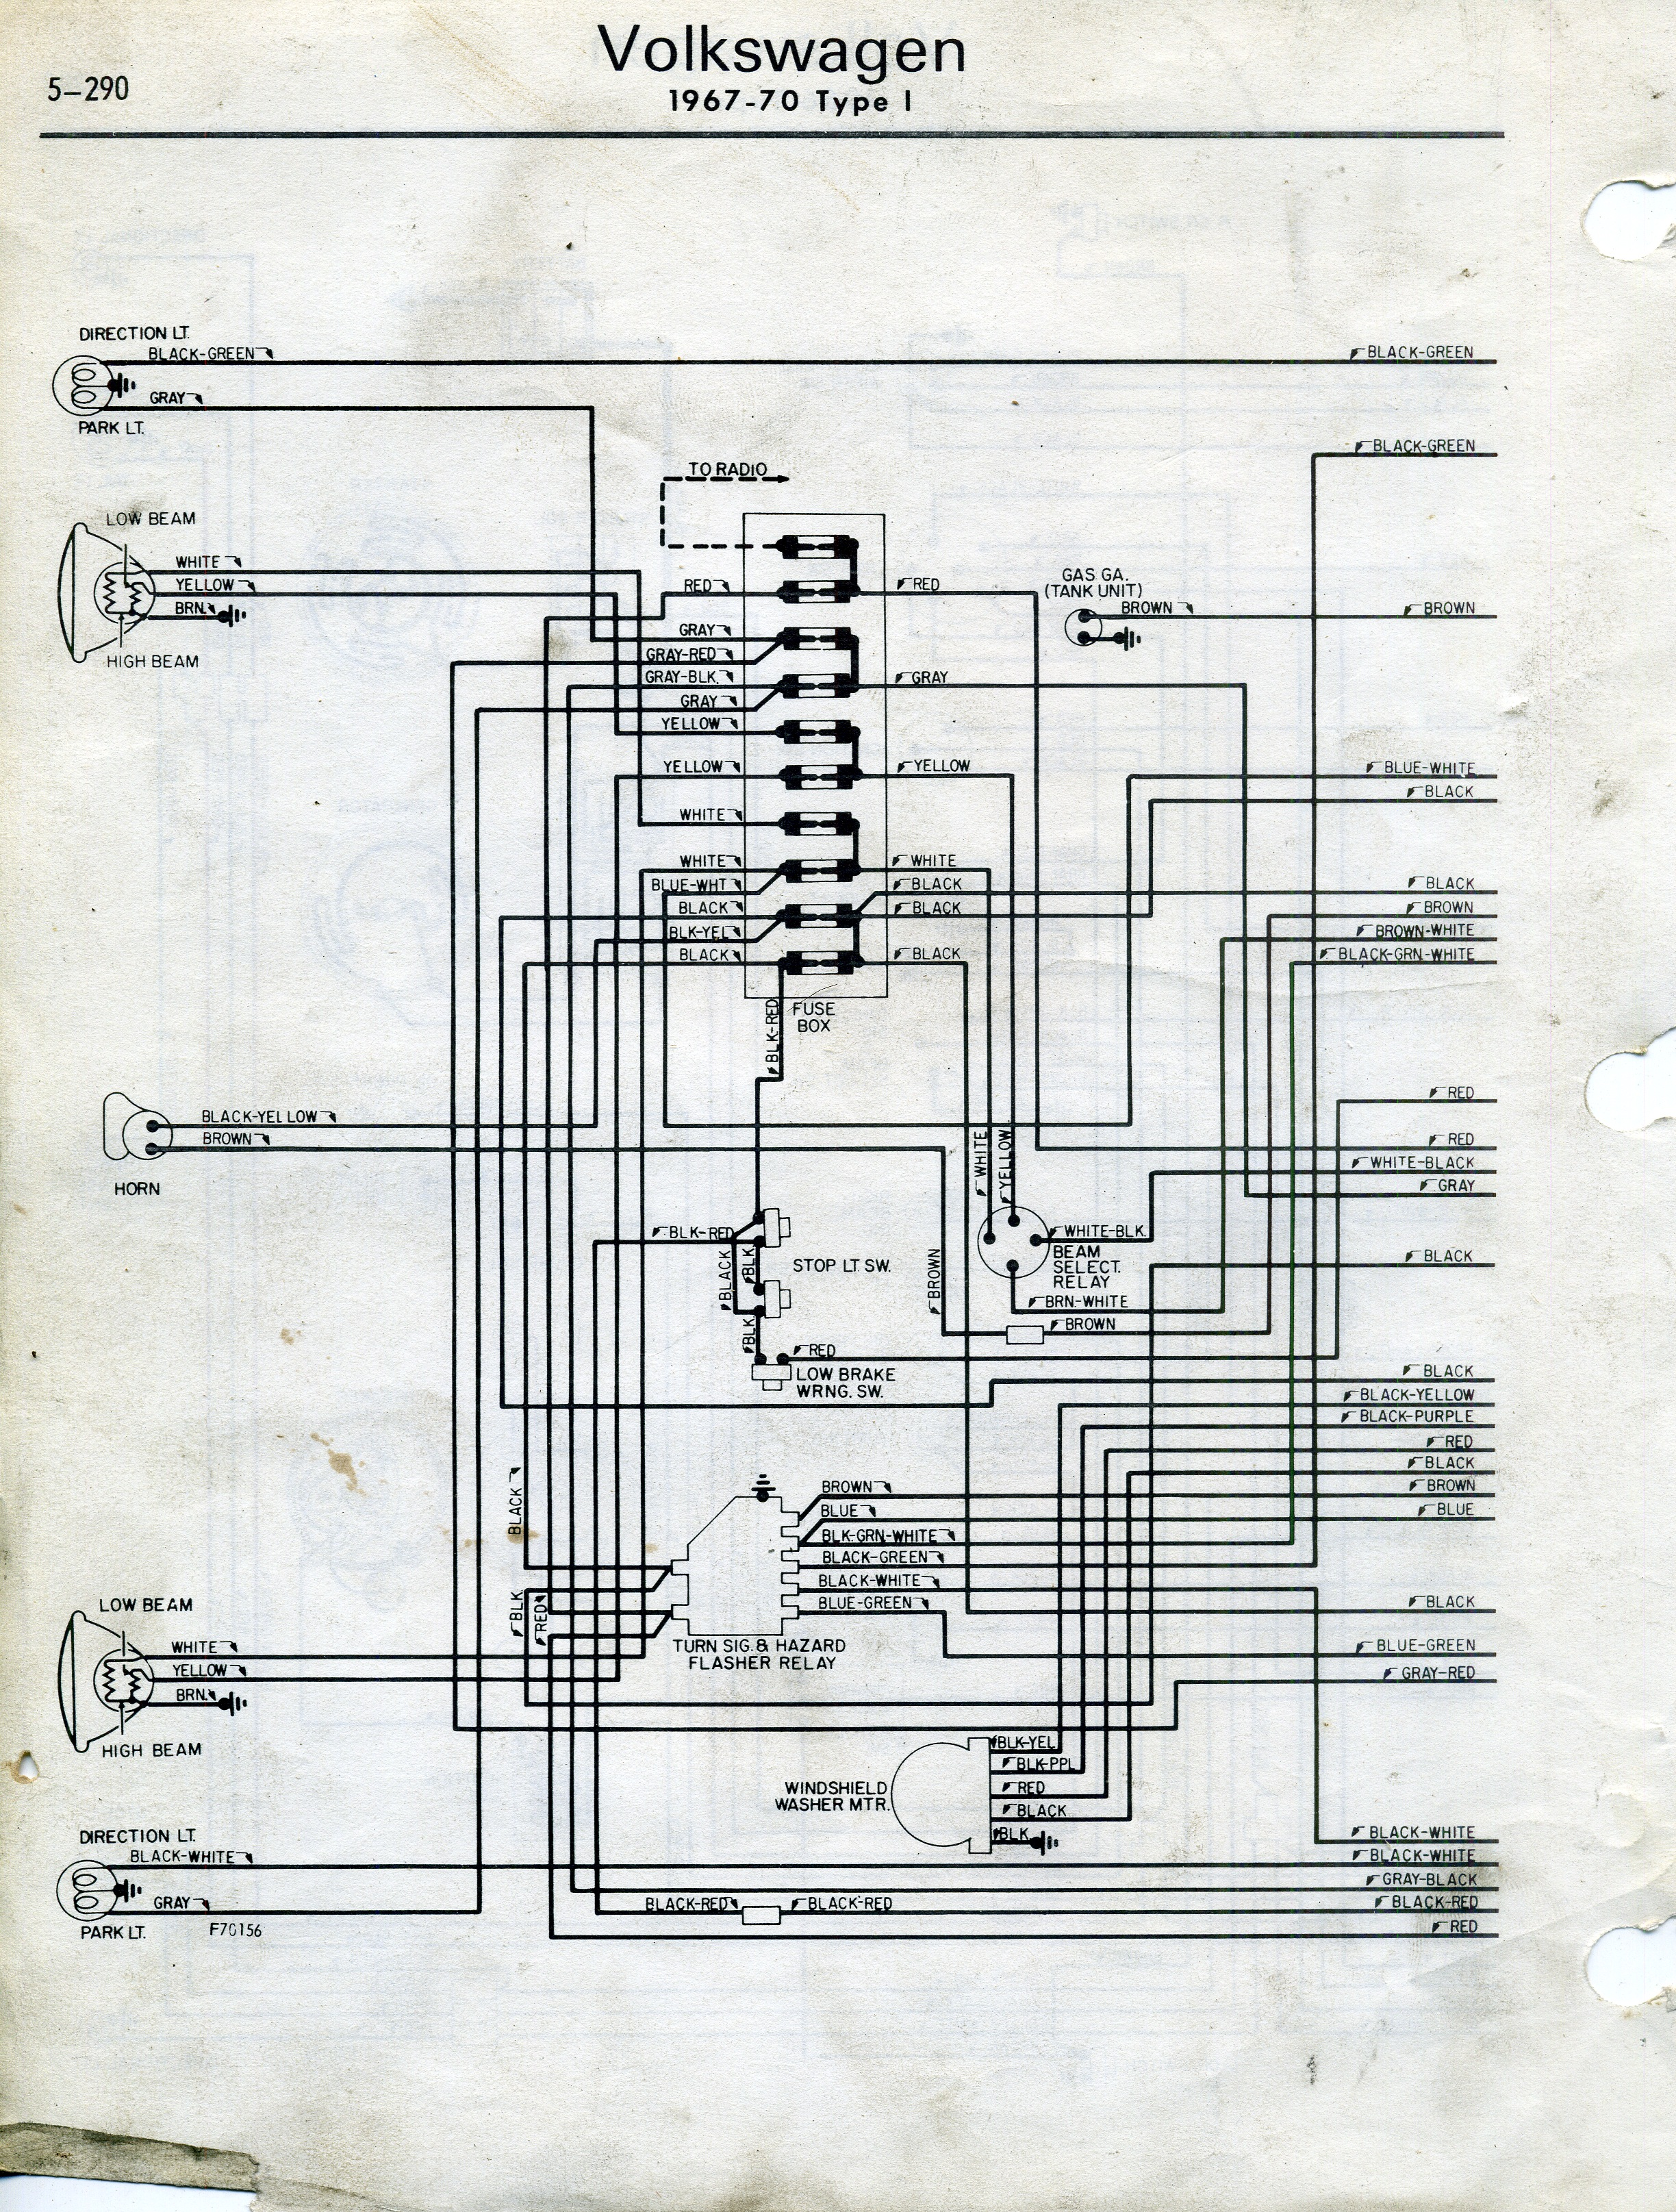 Type 1 Wiring Diagrams 67 Vw Harness Free Download Diagram Schematic 1967